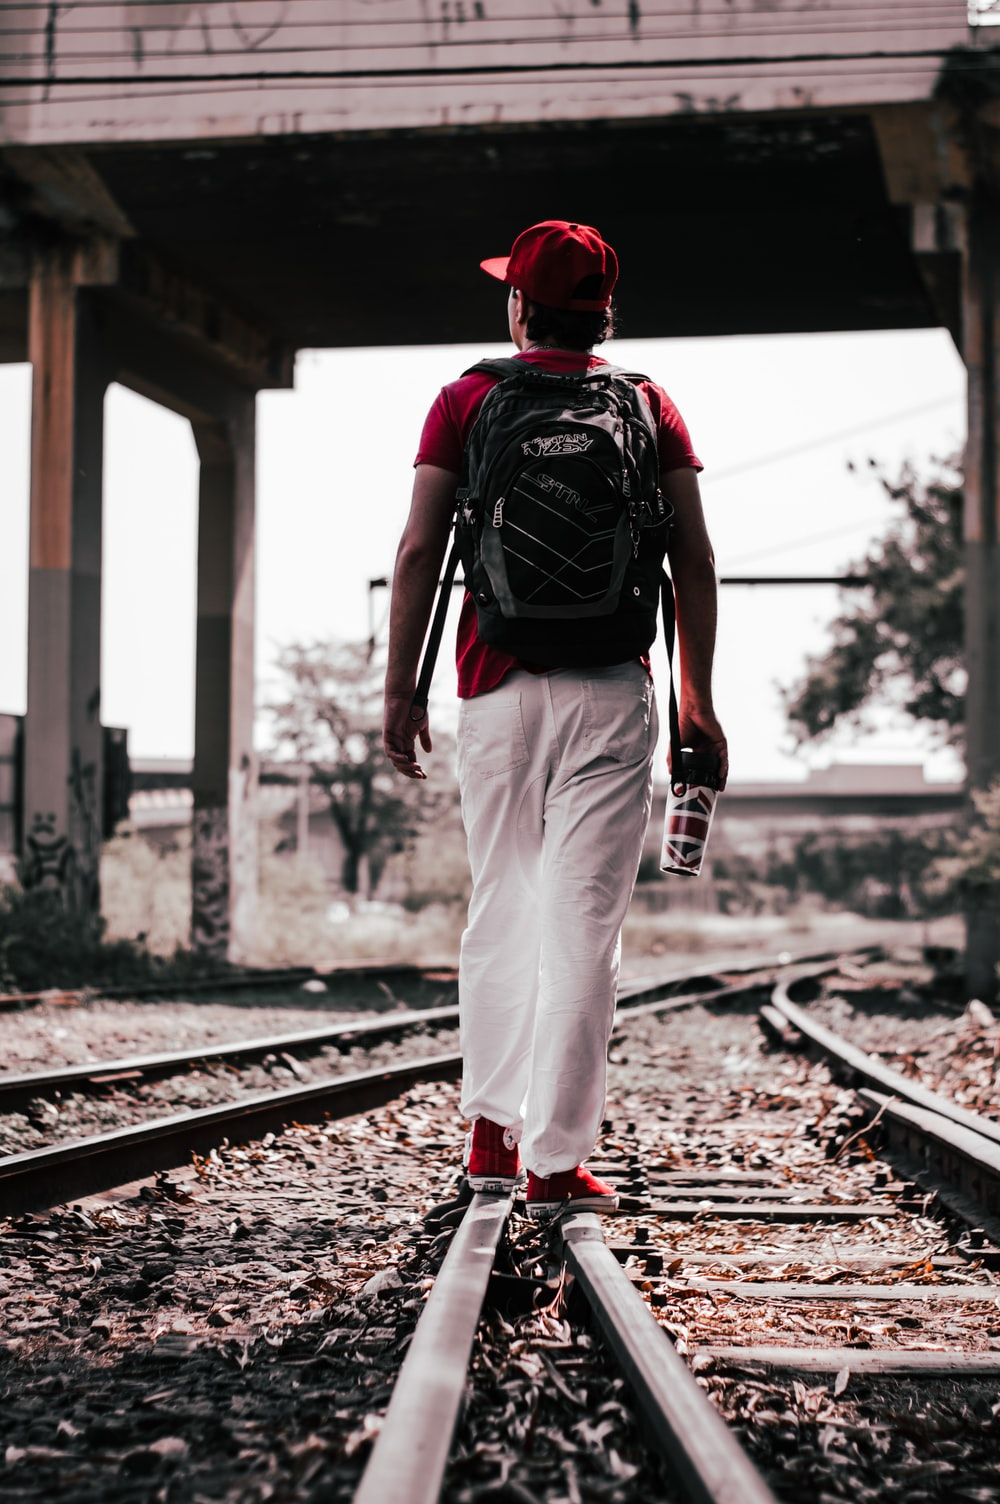 man in red and black backpack walking on train rail during daytime